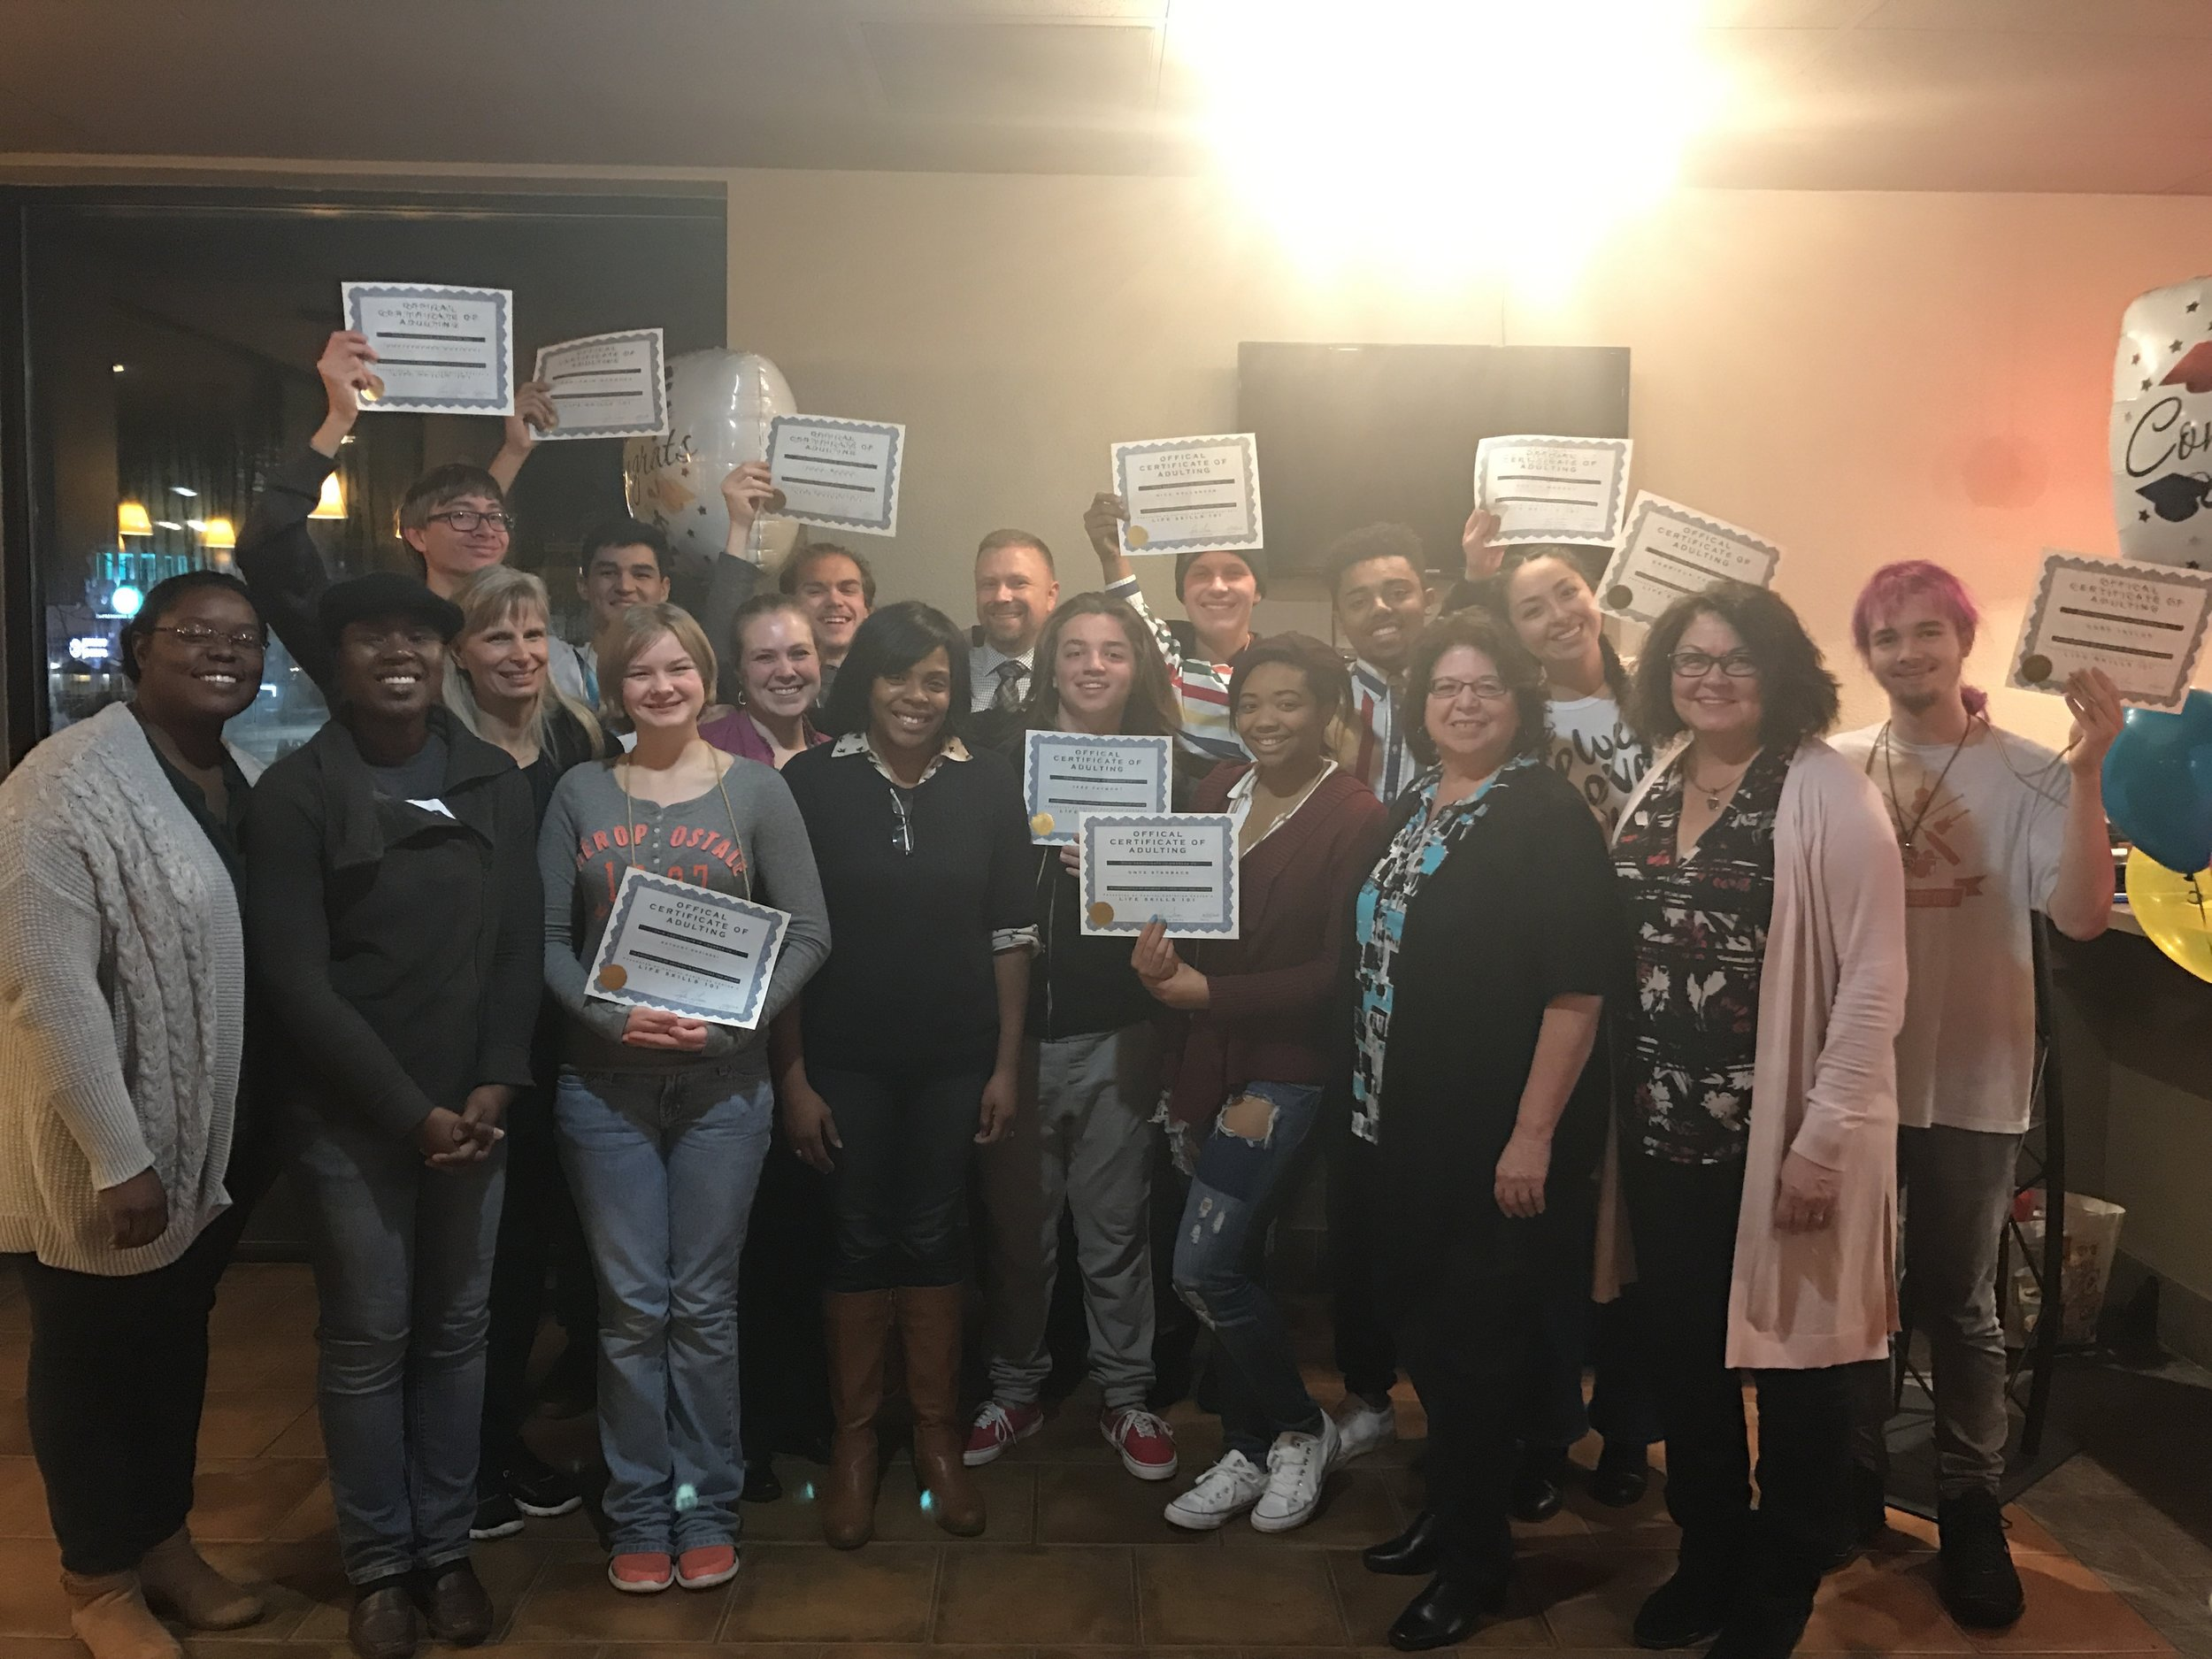 At Life Skills 101, one of our local PEACE Initiatives offered at the PEACE Center, participants learned and practiced public speaking, how to change a tire and more! Pictured here are Life Skills 101 graduates and teachers.